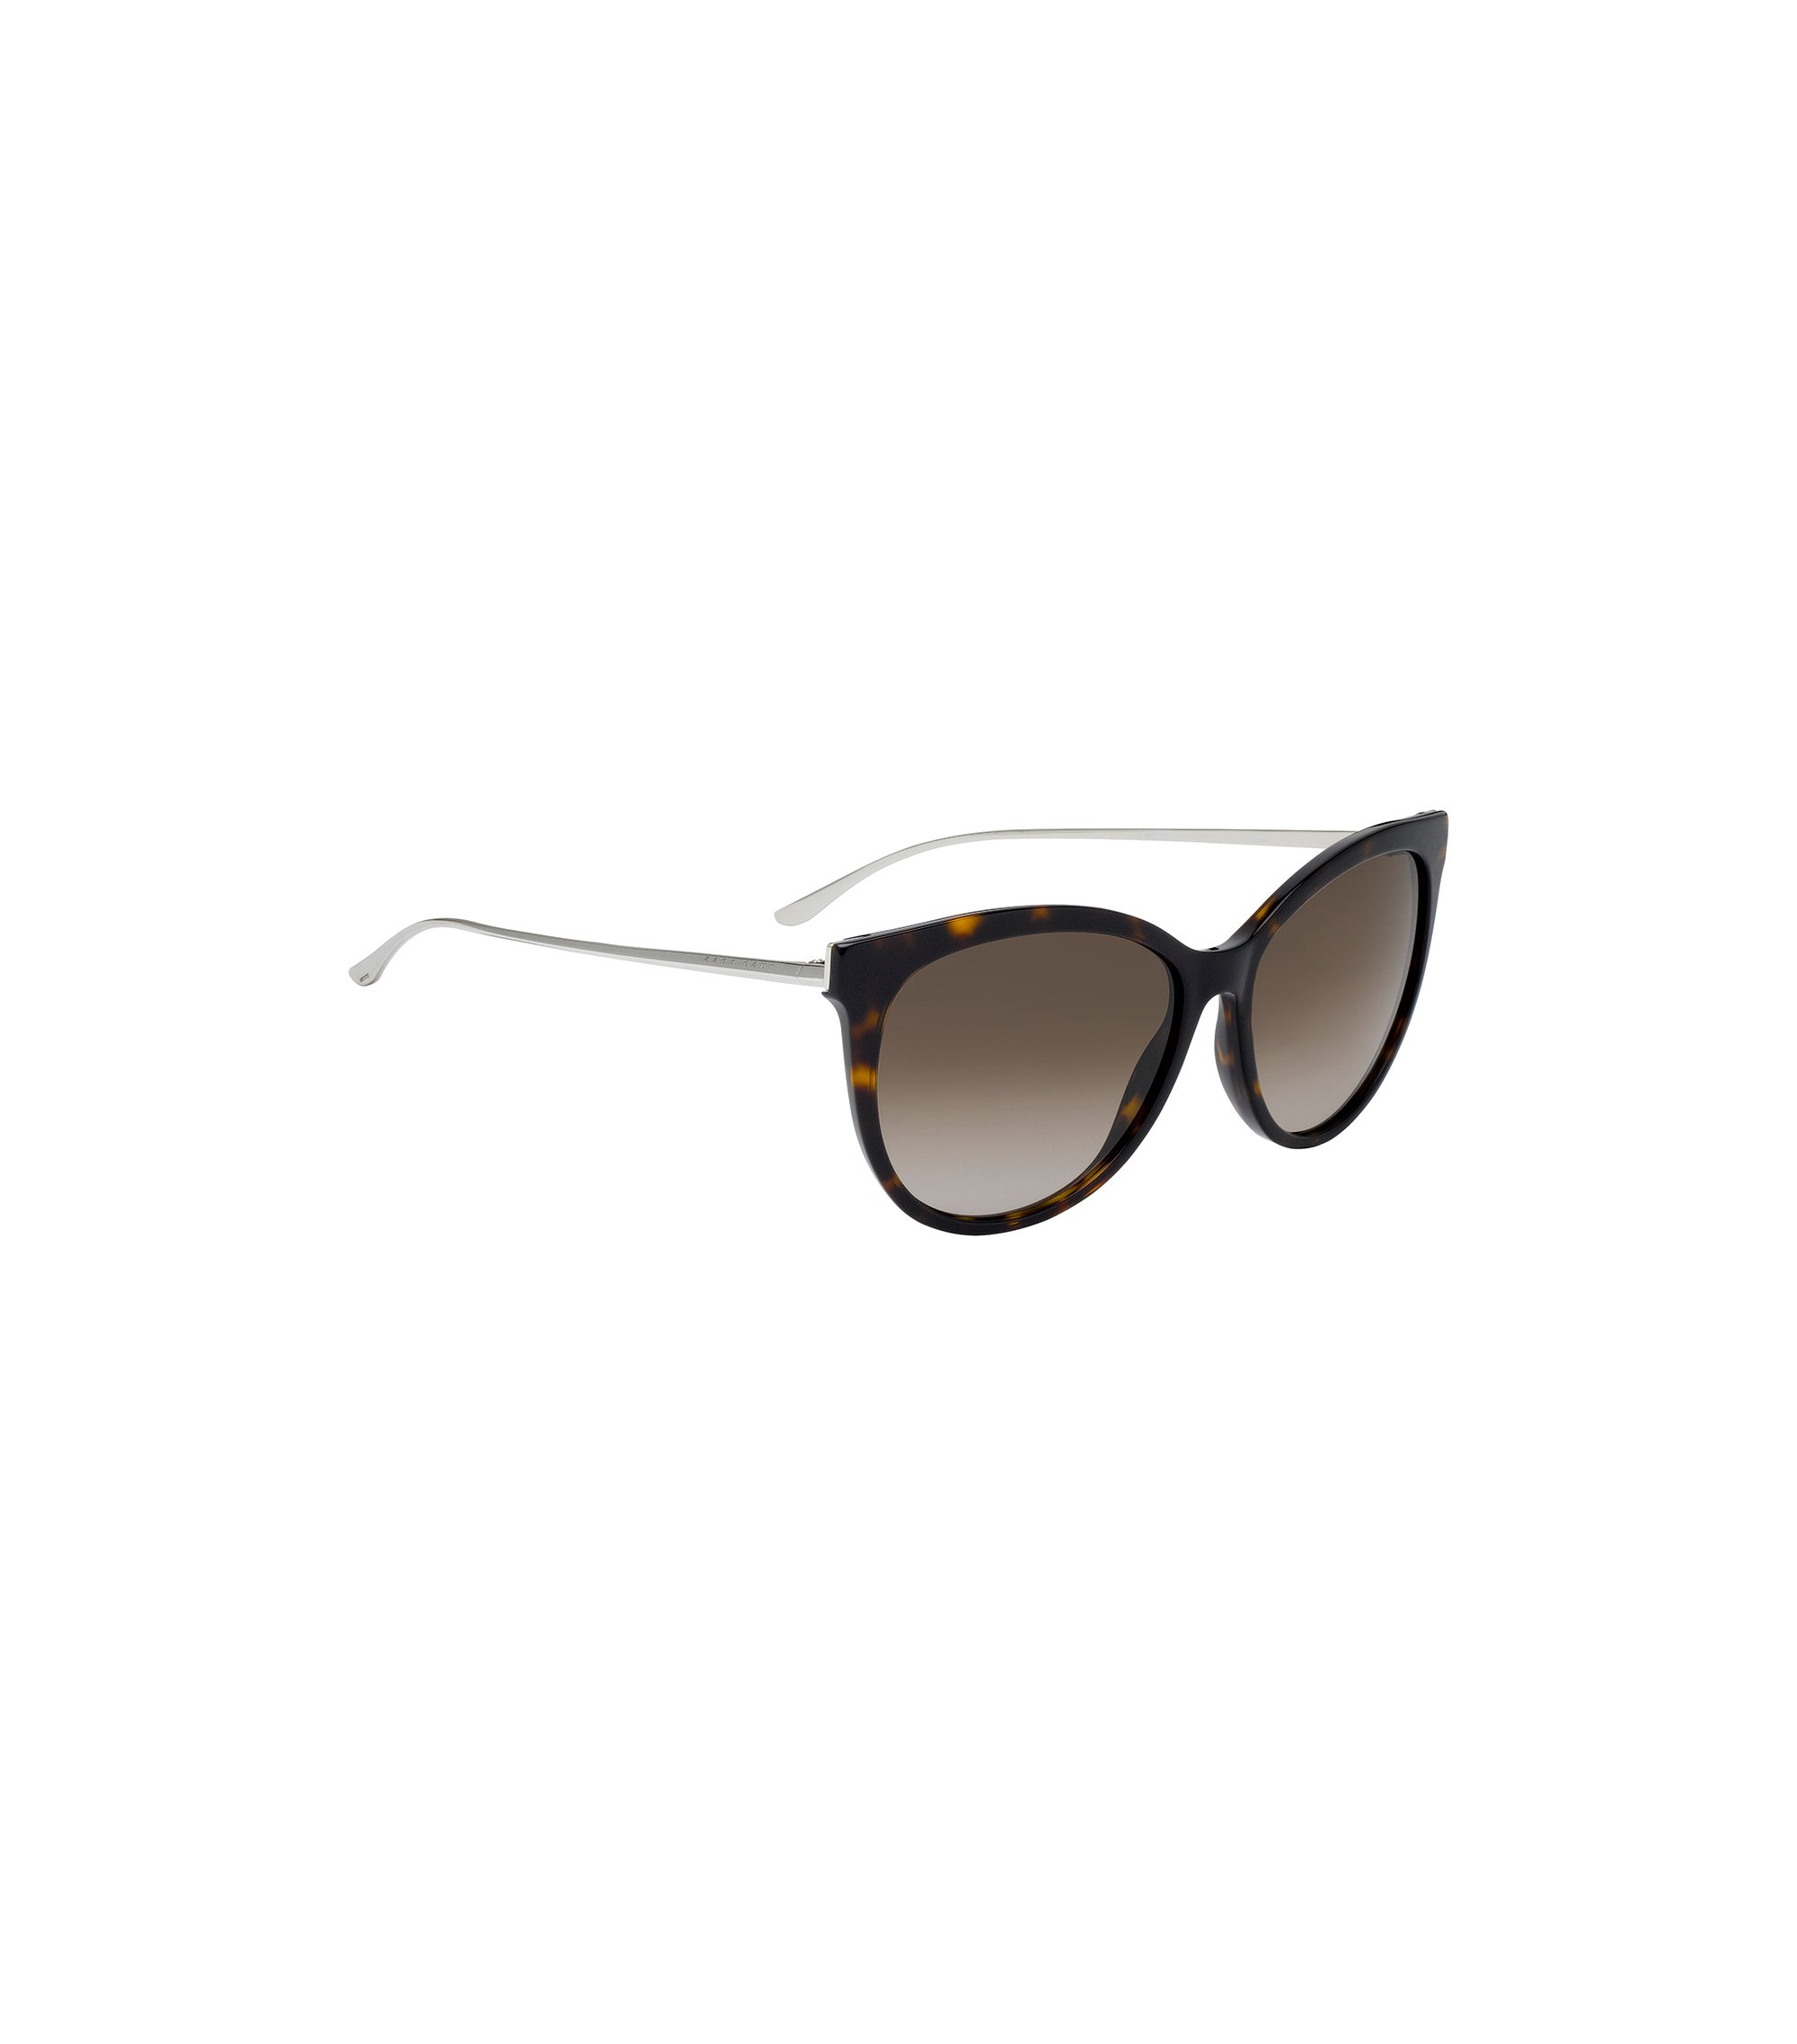 Tortoiseshell Cat-Eye Sunglasses | BOSS 0892S, Assorted-Pre-Pack